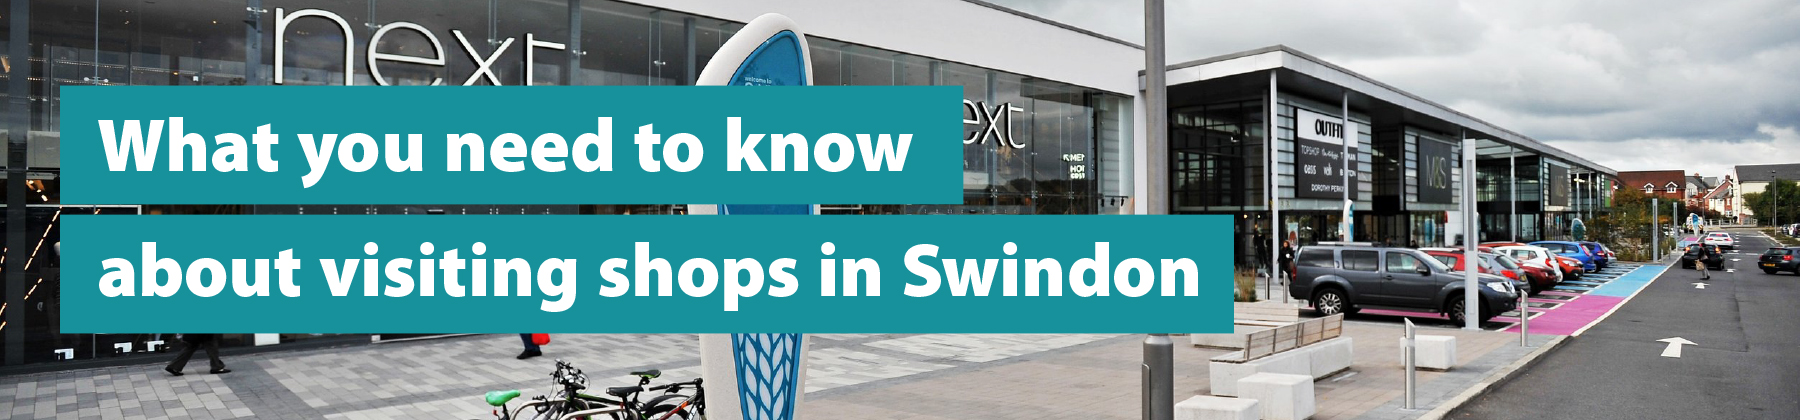 Banner image promoting information about visiting shops during Covid-19 restrictions